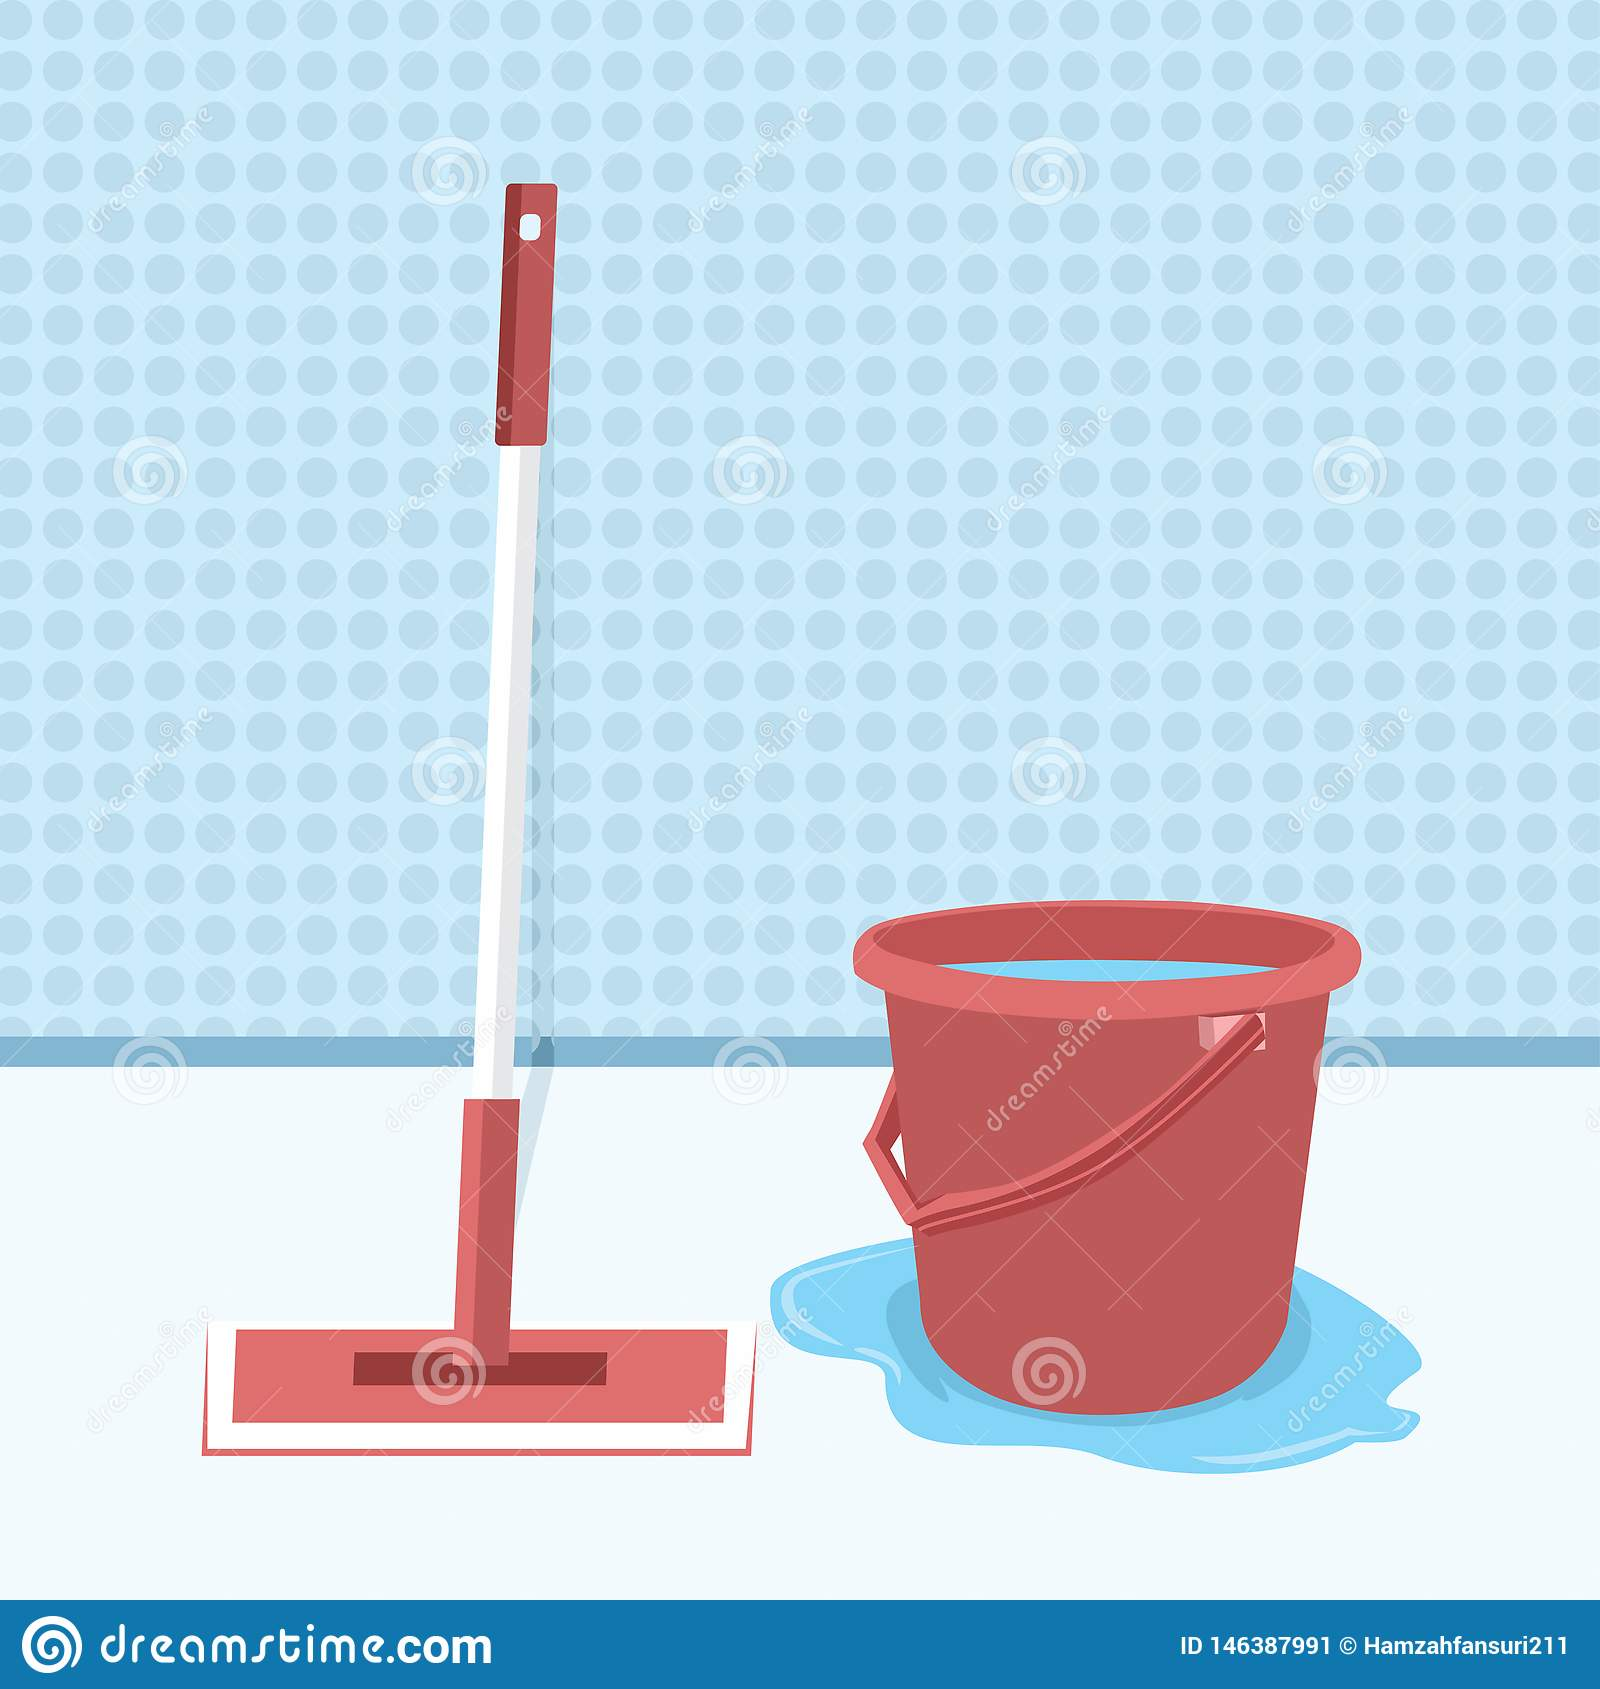 Mop And Bucket With Water Vector Illustration, Mopping The Floor Flat Design. Wet Cleaning. Clean Room. Cleaning Of Office Premise